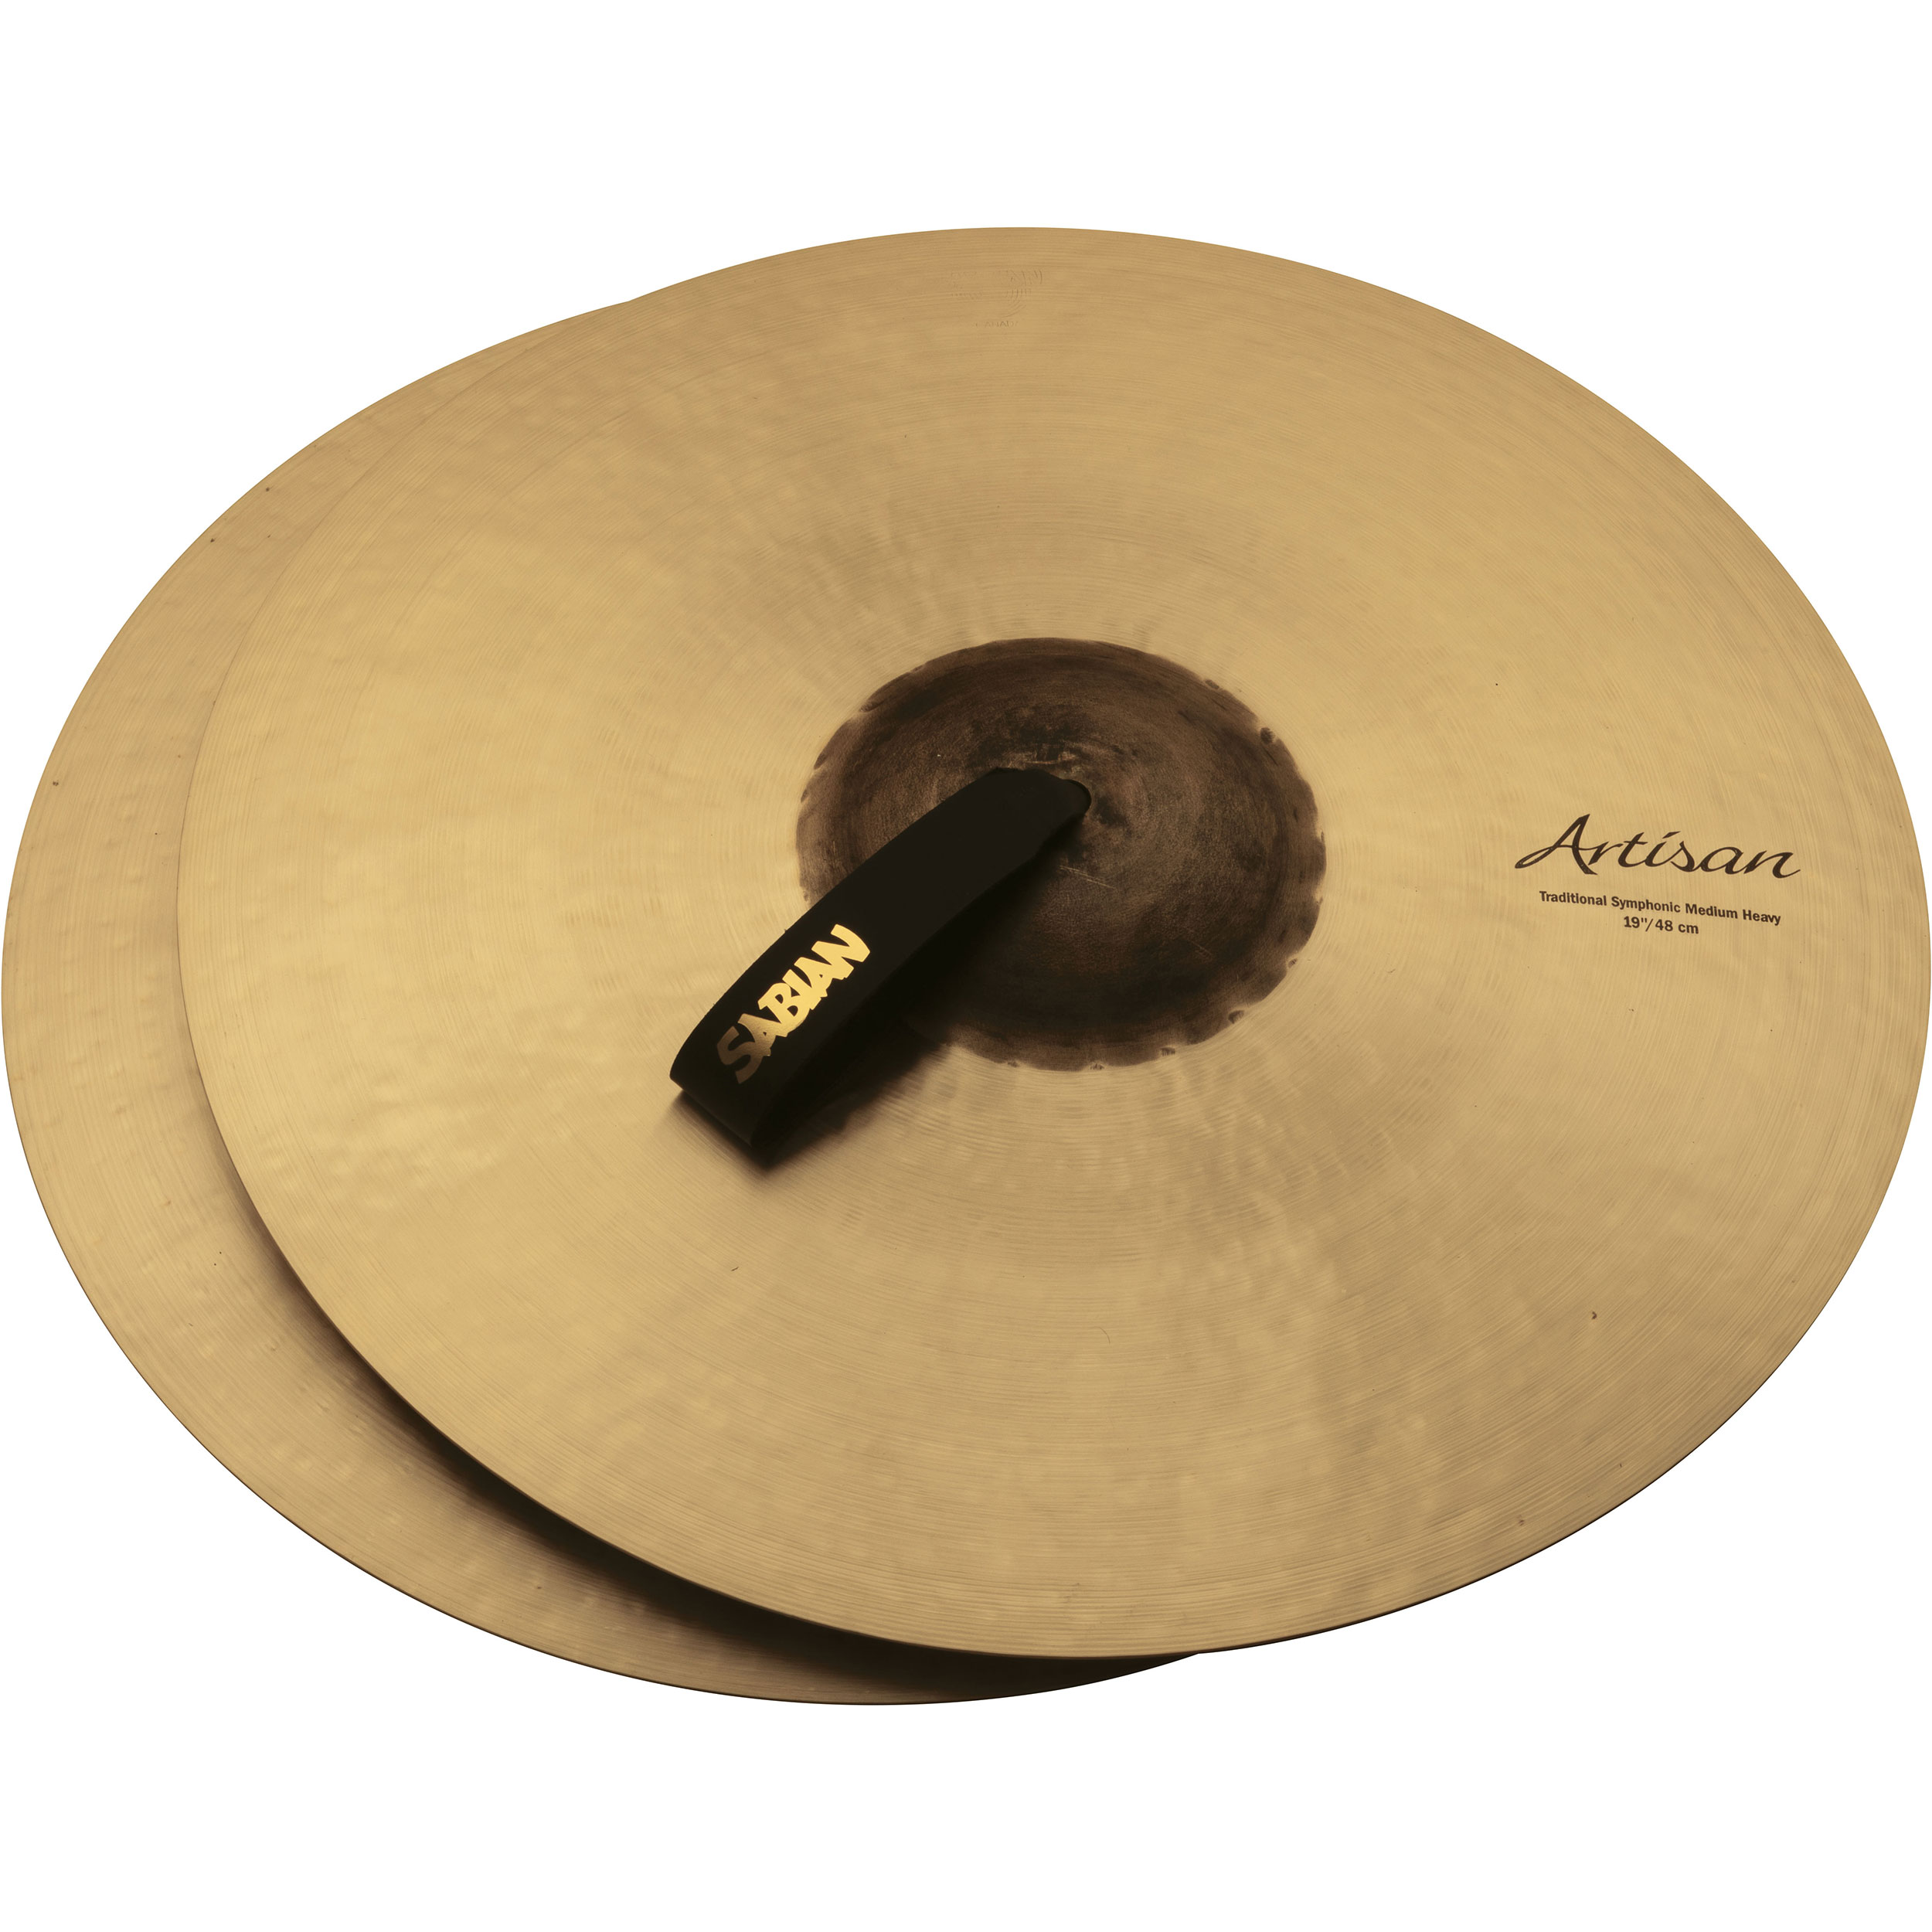 "Sabian 19"" Artisan Traditional Symphonic Medium-Heavy Crash Cymbal Pair"